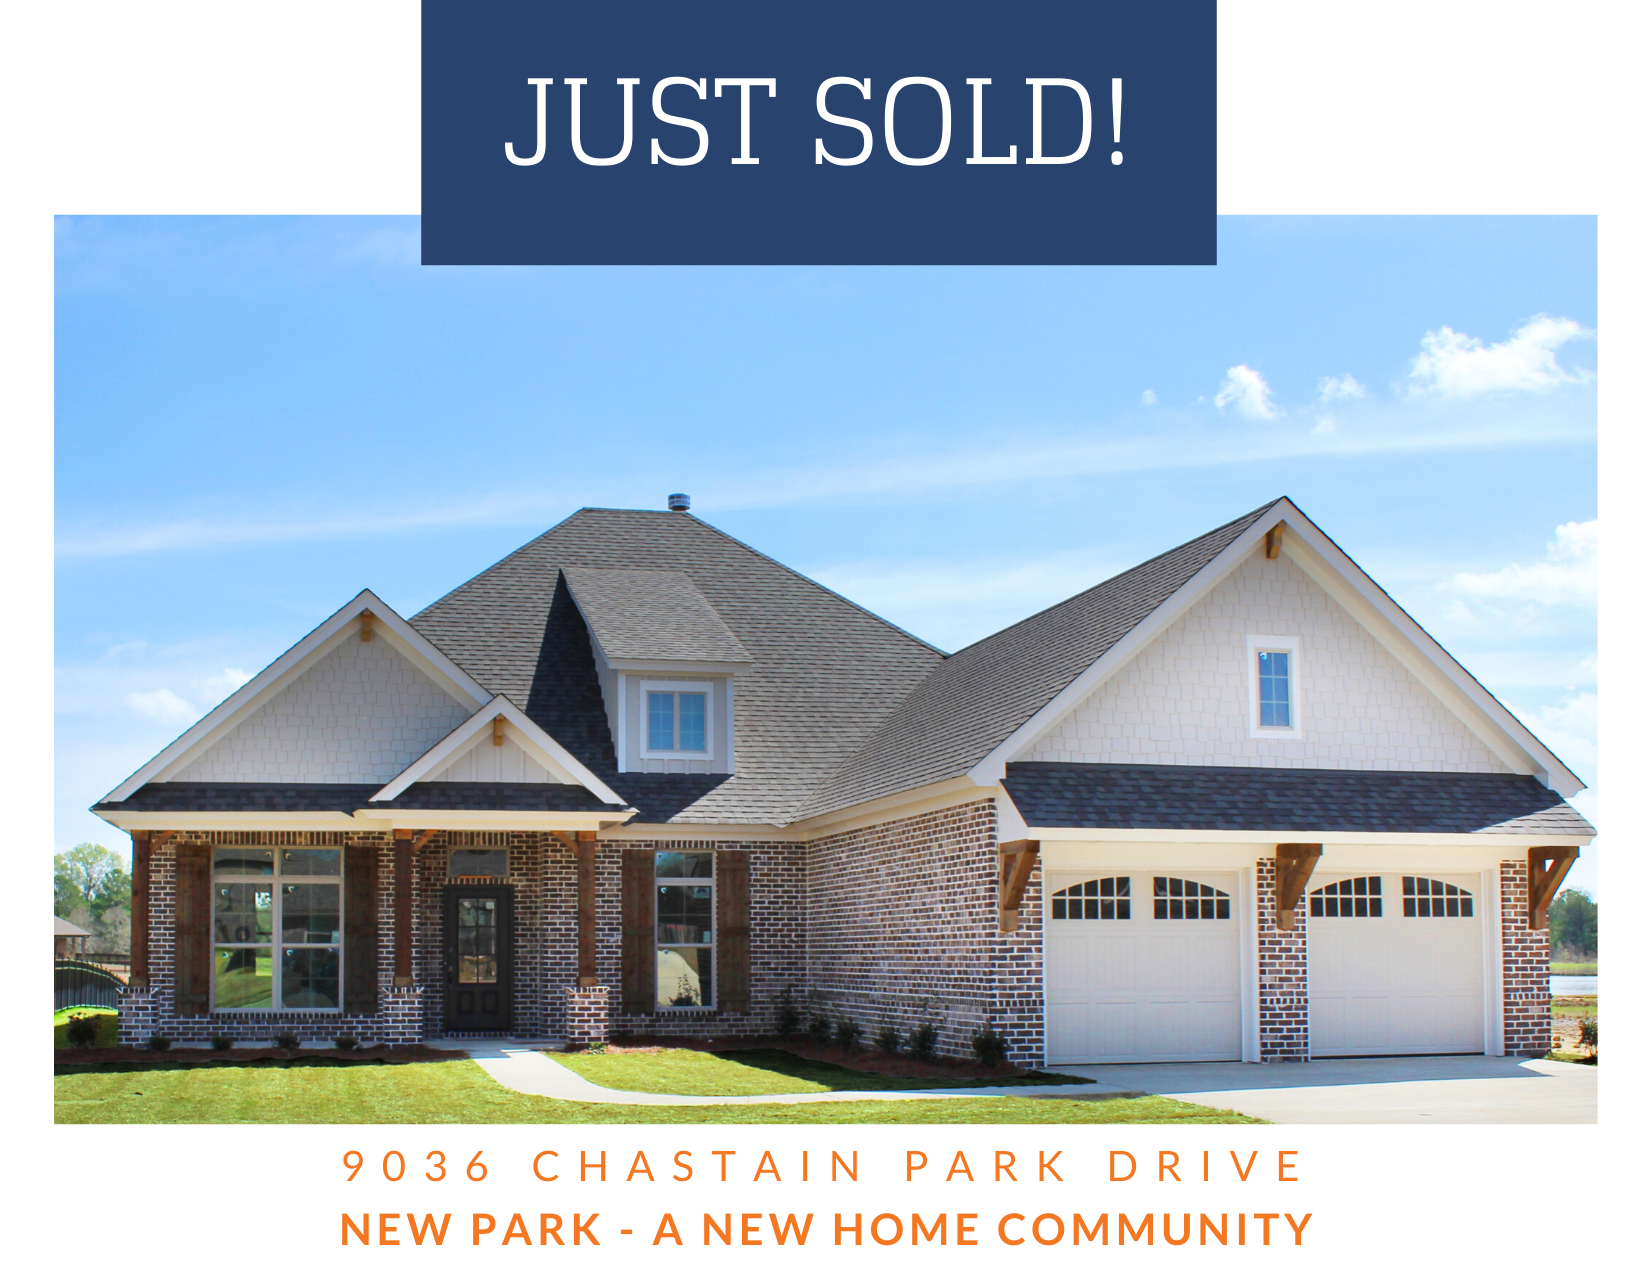 Congratulations to our new neighbors who closed on their home this morning!!  Thank you for choosing to call New Park home! #newparkliving #lowdernewhomes #mgmrealestate #mymgm #newhome #SOLD